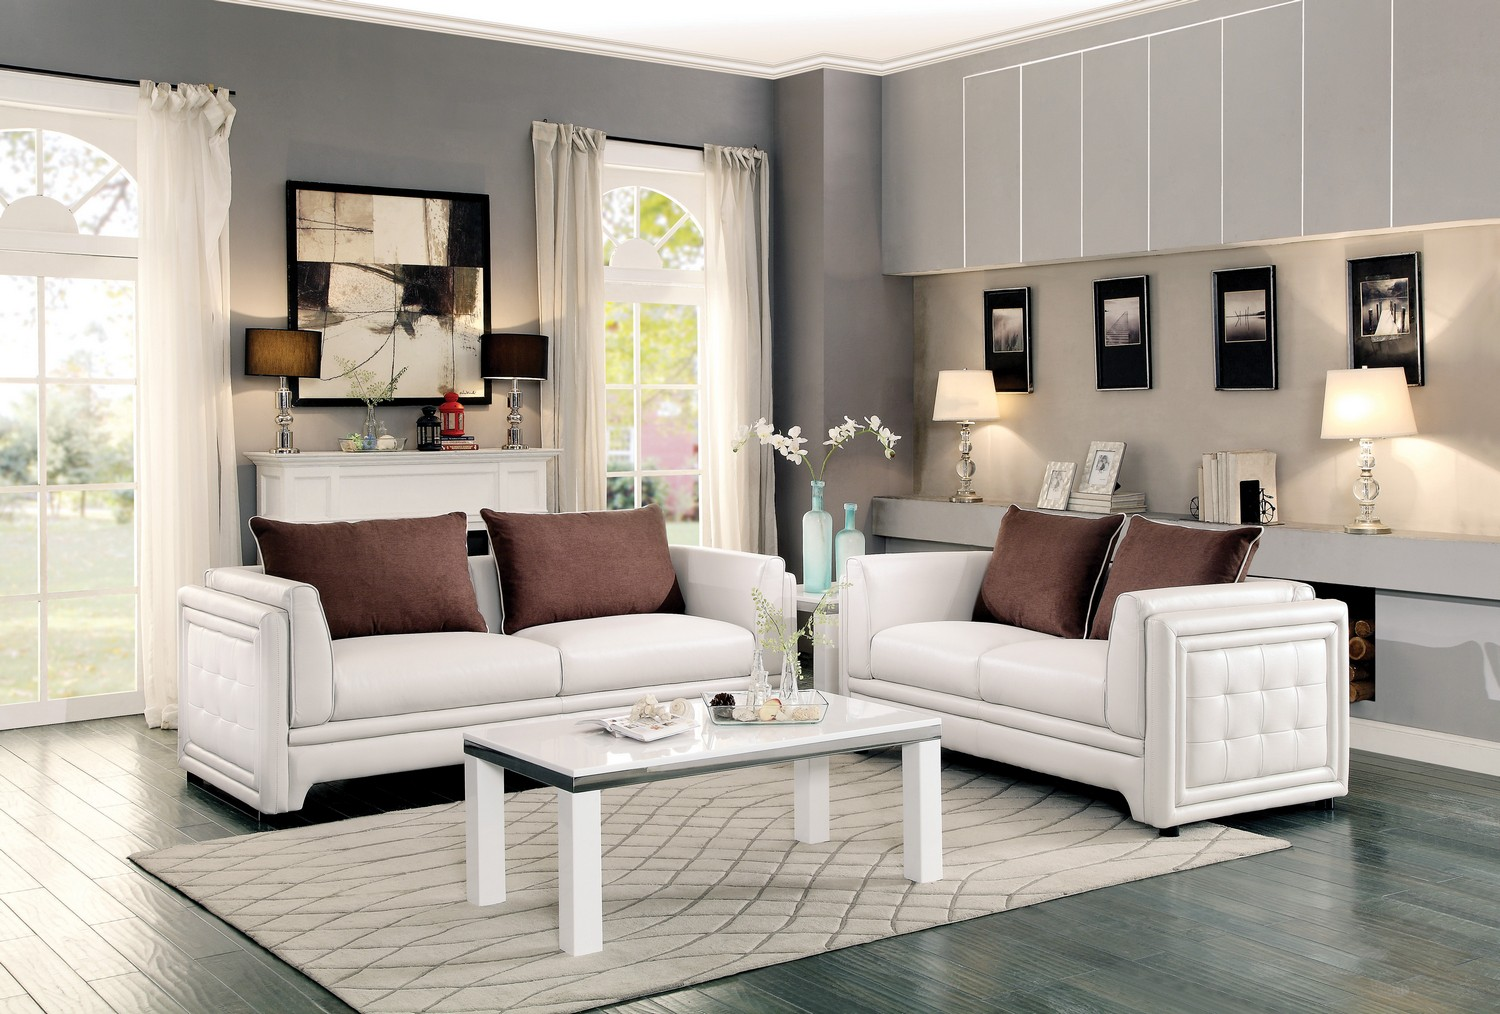 Admirable Homelegance Azure Sofa Set Faux Leather Off White Dailytribune Chair Design For Home Dailytribuneorg